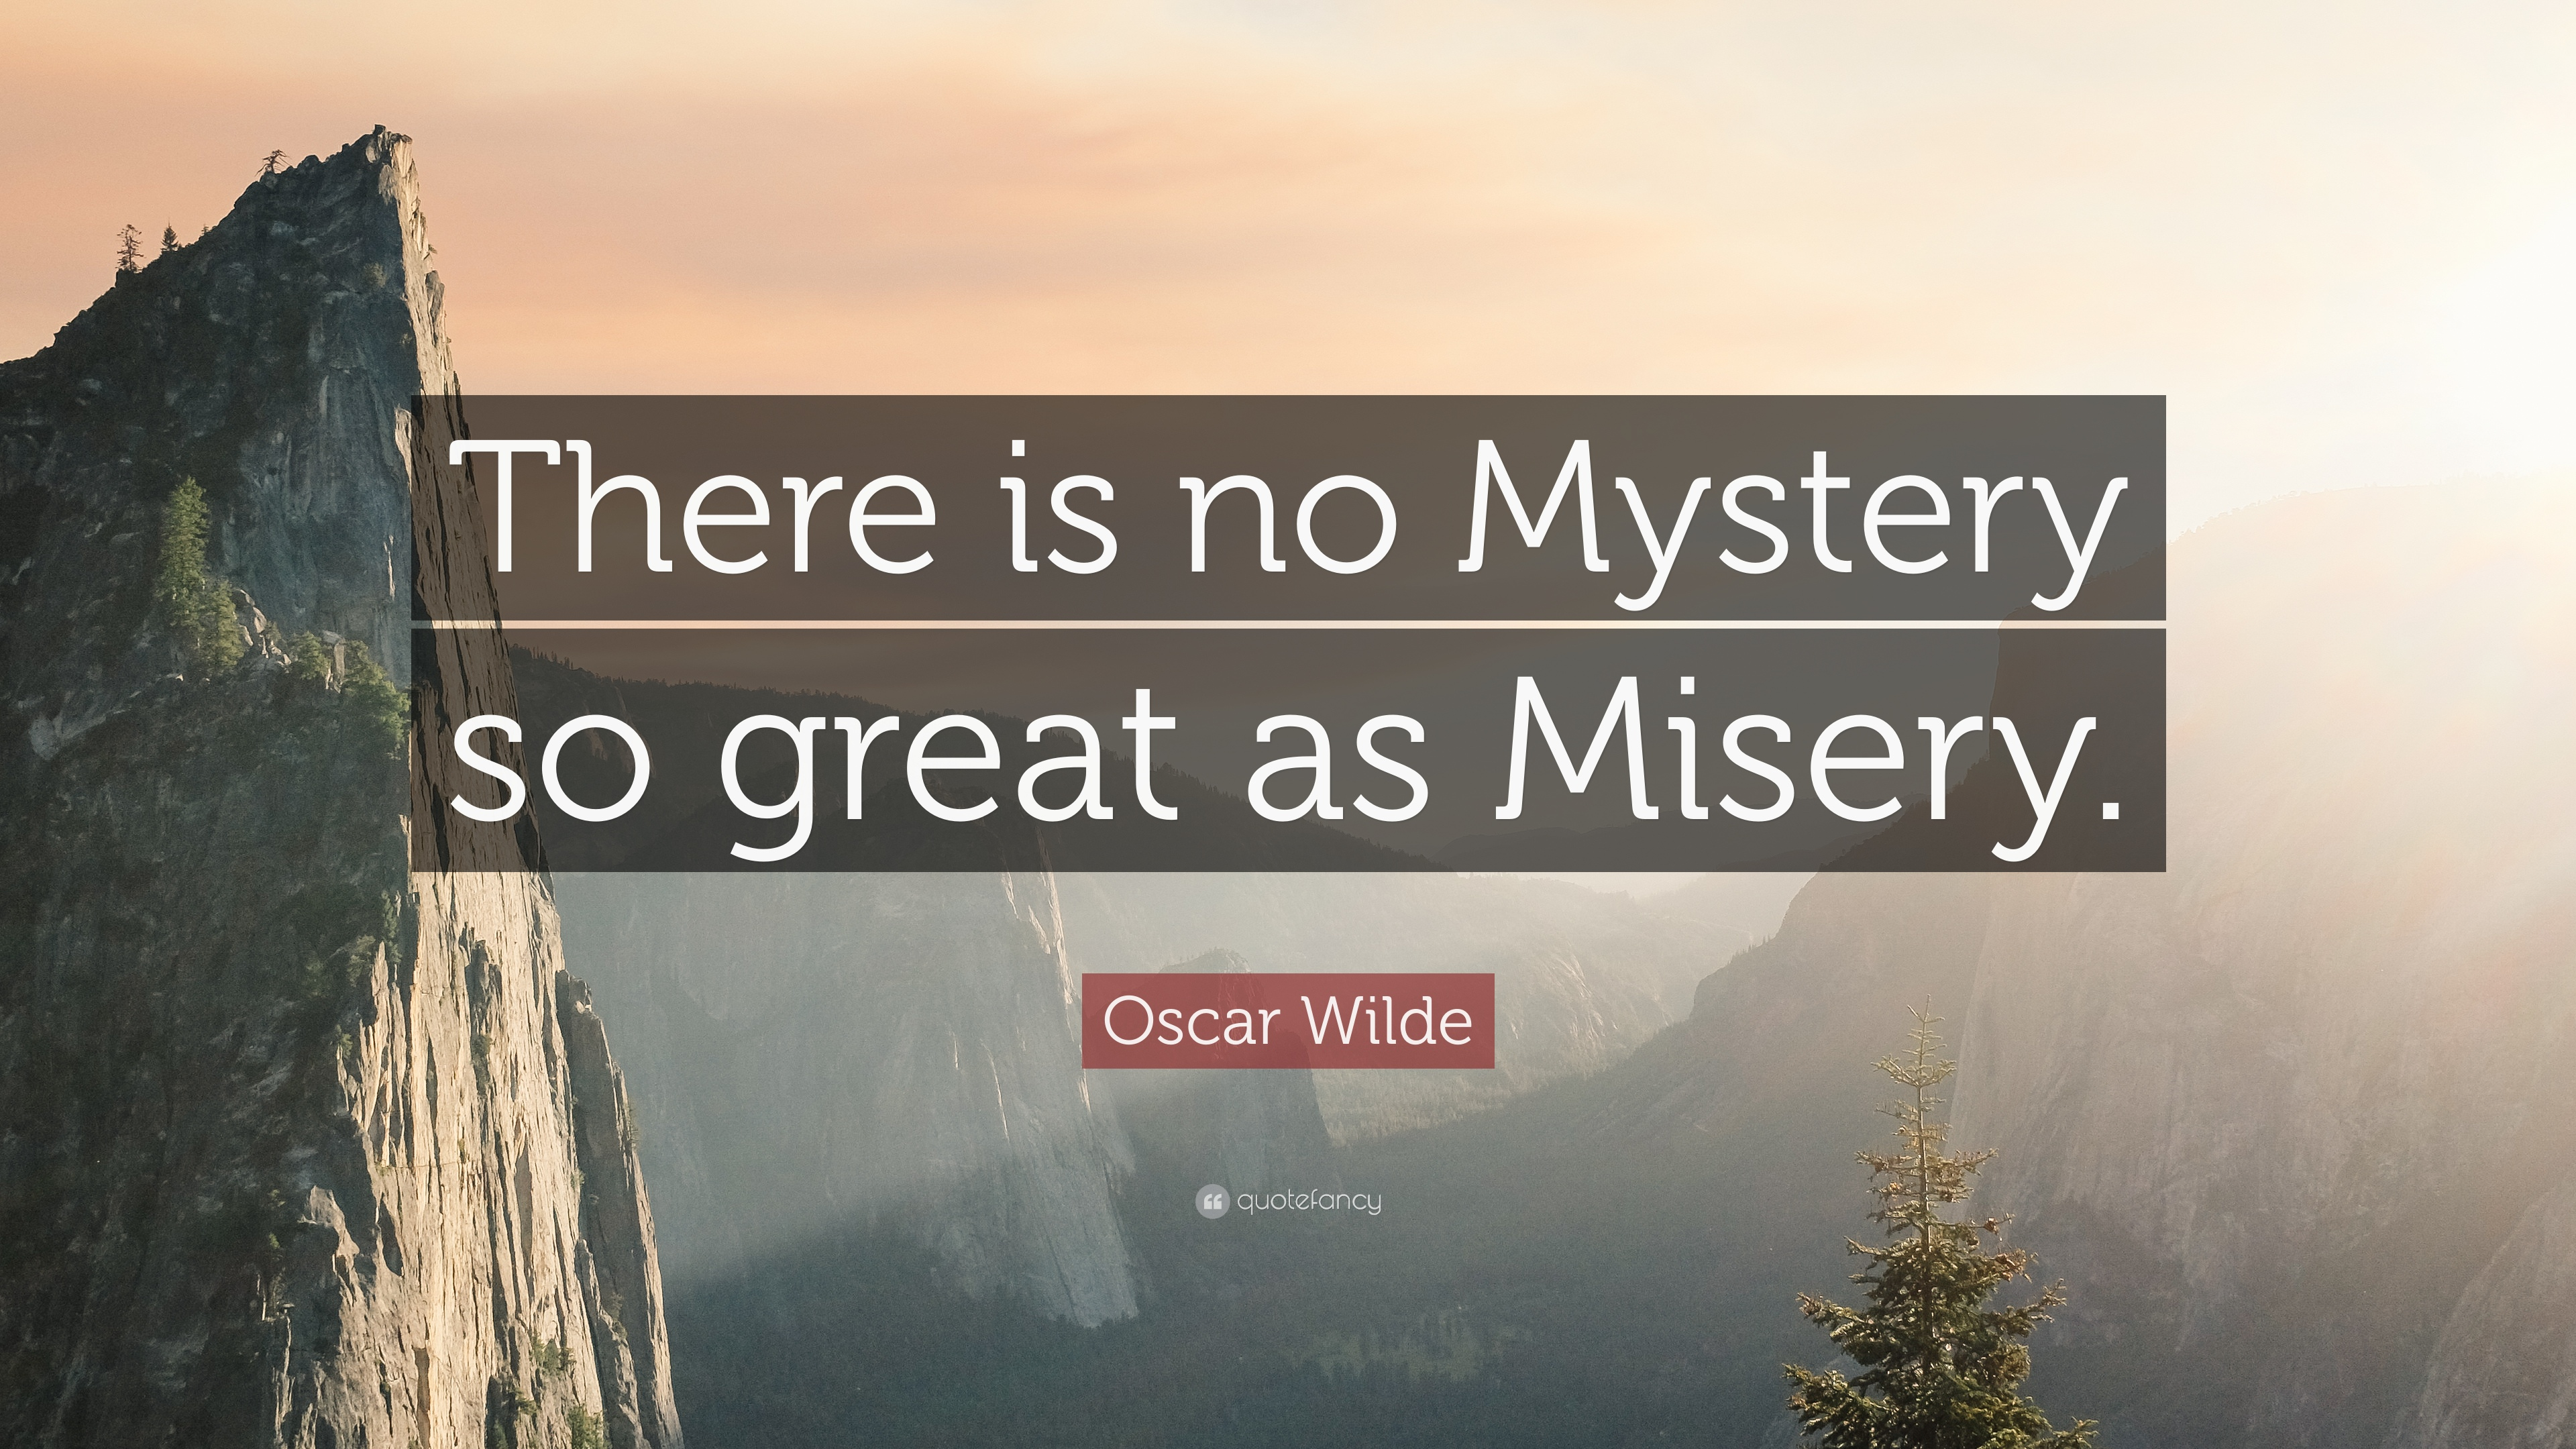 From Misery to Mystery